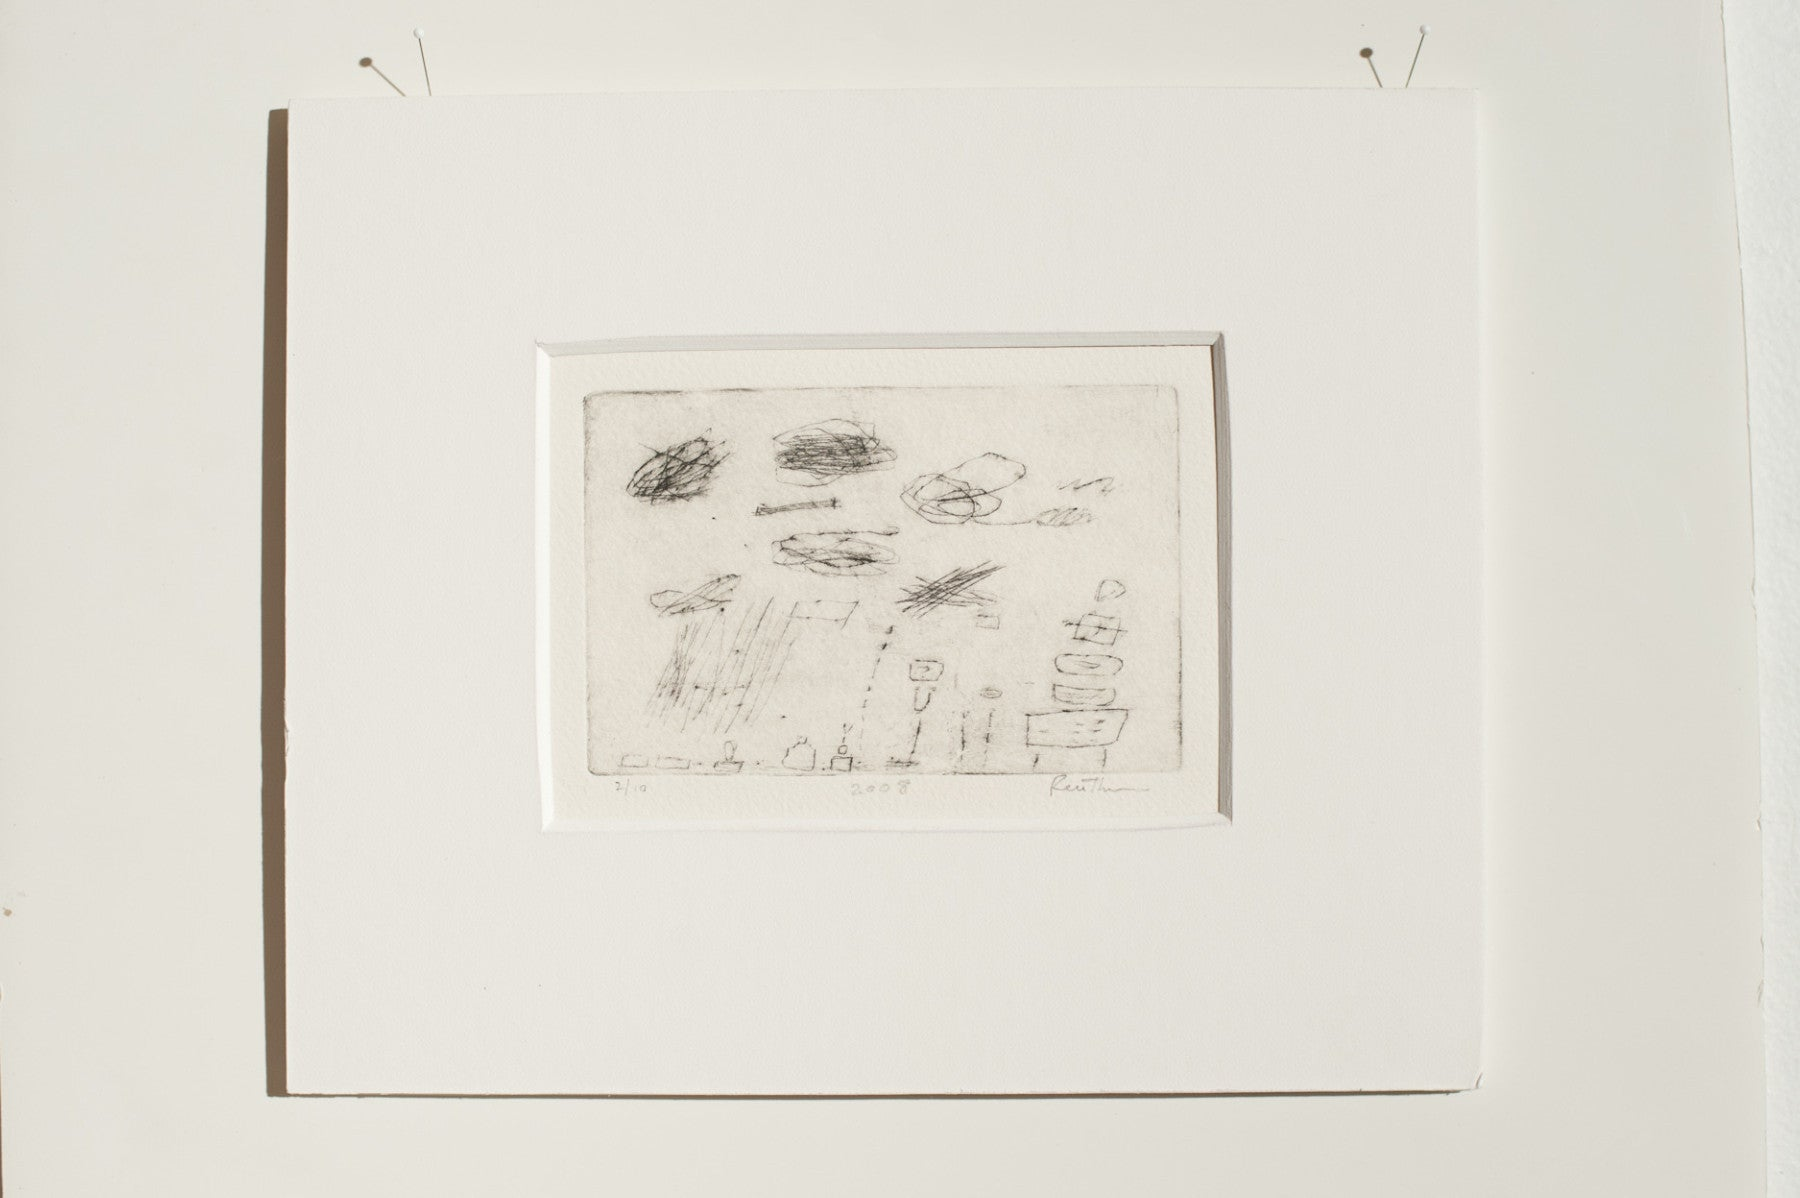 Kit Reuther - Untitled - Etching